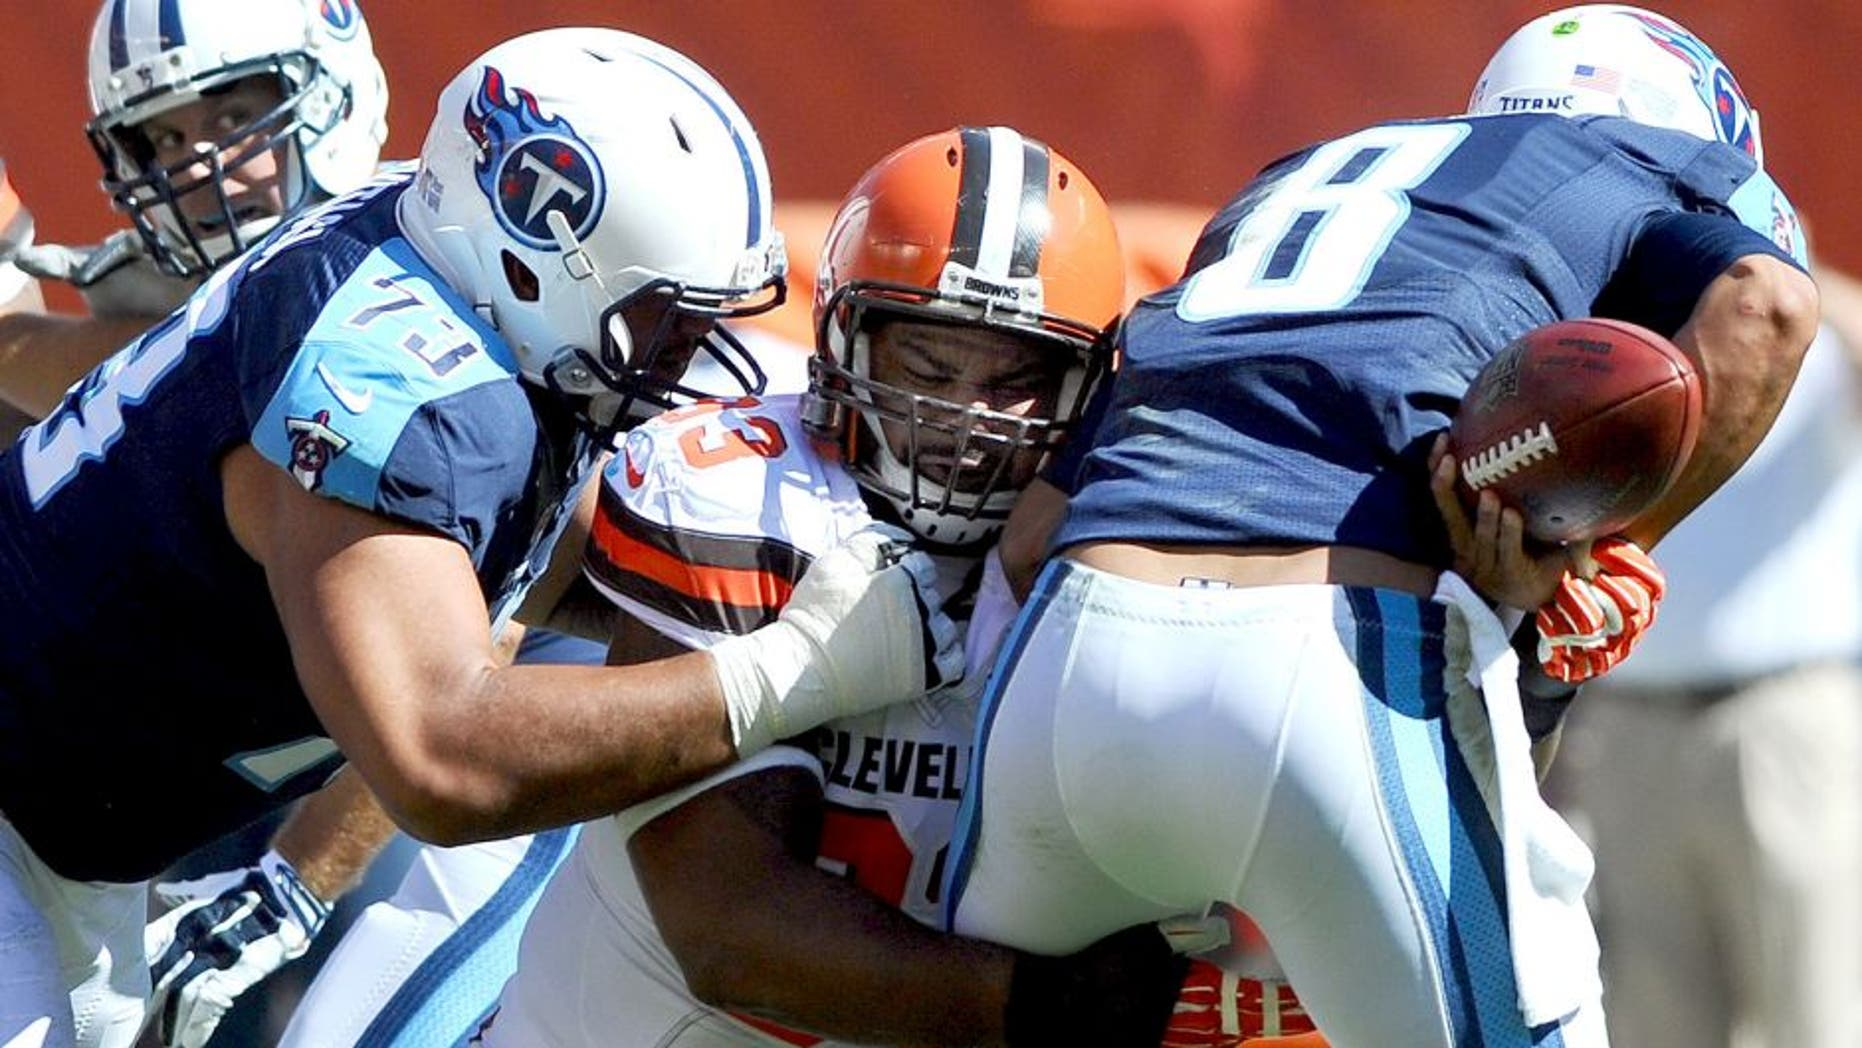 Sep 20, 2015; Cleveland, OH, USA; Cleveland Browns defensive end John Hughes (93) sacks Tennessee Titans quarterback Marcus Mariota (8) during the second half at FirstEnergy Stadium. The Browns won 28-14. Mandatory Credit: Ken Blaze-USA TODAY Sports